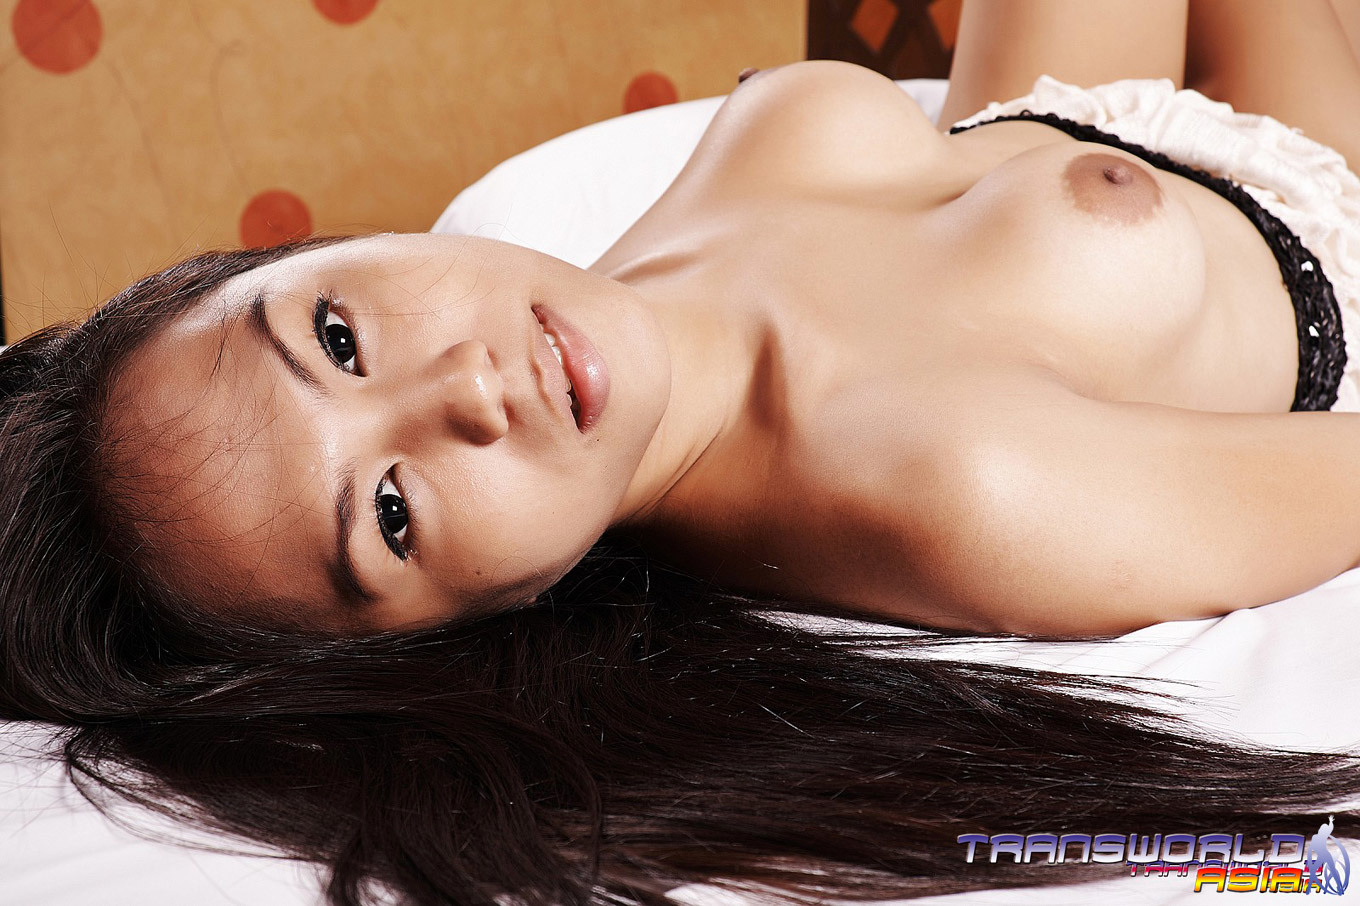 thai transexual with kissable legs and a perky tool